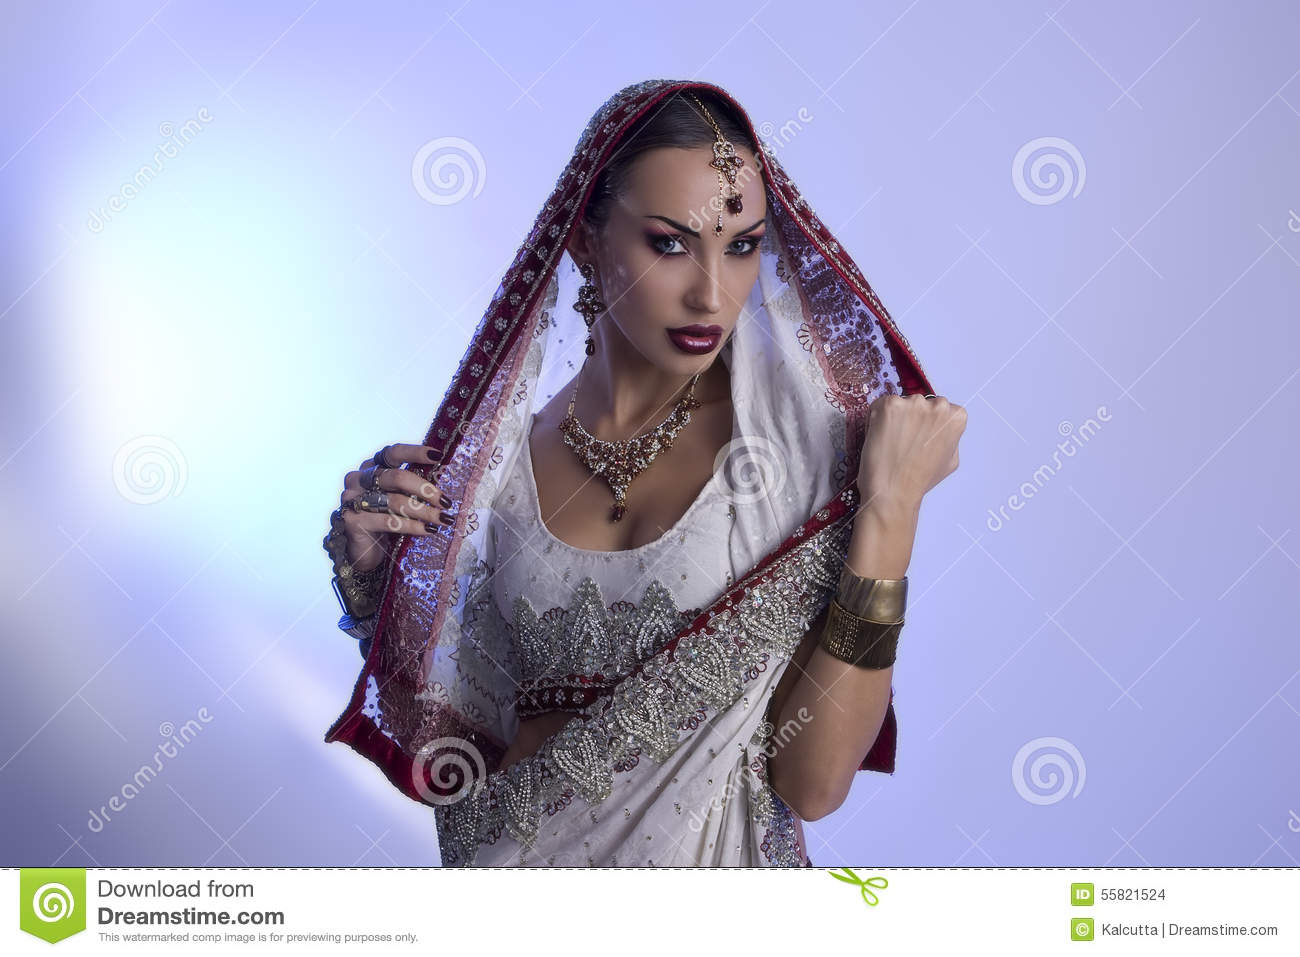 67eaa53fa0 Beautiful Young Indian Woman in Traditional Clothing with Bridal Makeup and Oriental  Jewelry. Beautiful Girl Bollywood dancer (Bellydancer) in Sari.